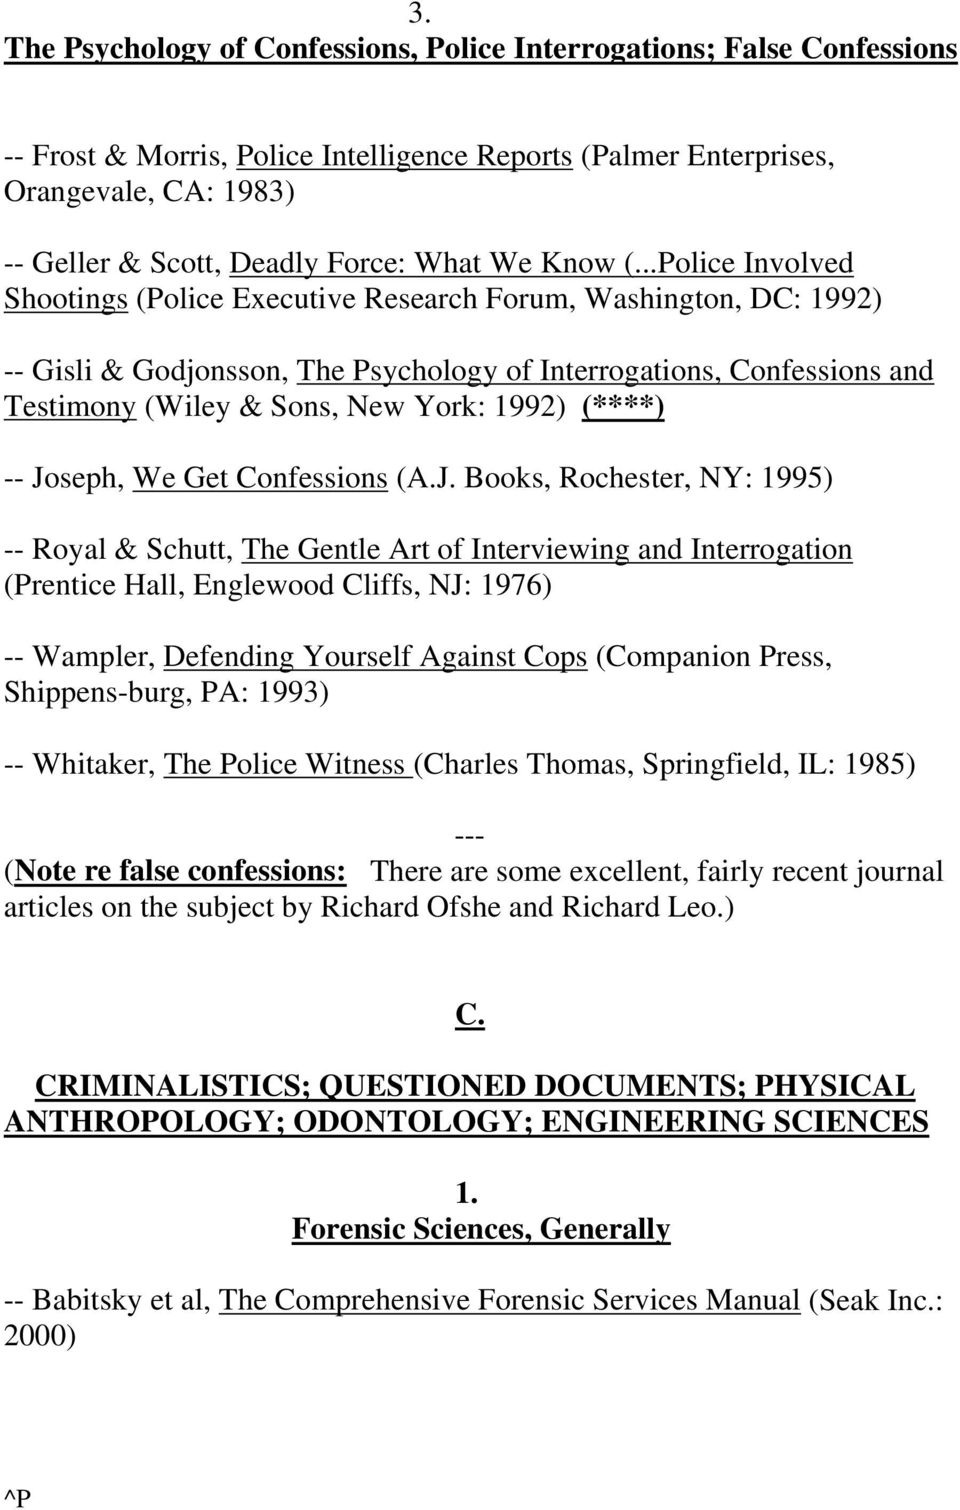 ..Police Involved Shootings (Police Executive Research Forum, Washington, DC: 1992) -- Gisli & Godjonsson, The Psychology of Interrogations, Confessions and Testimony (Wiley & Sons, New York: 1992)